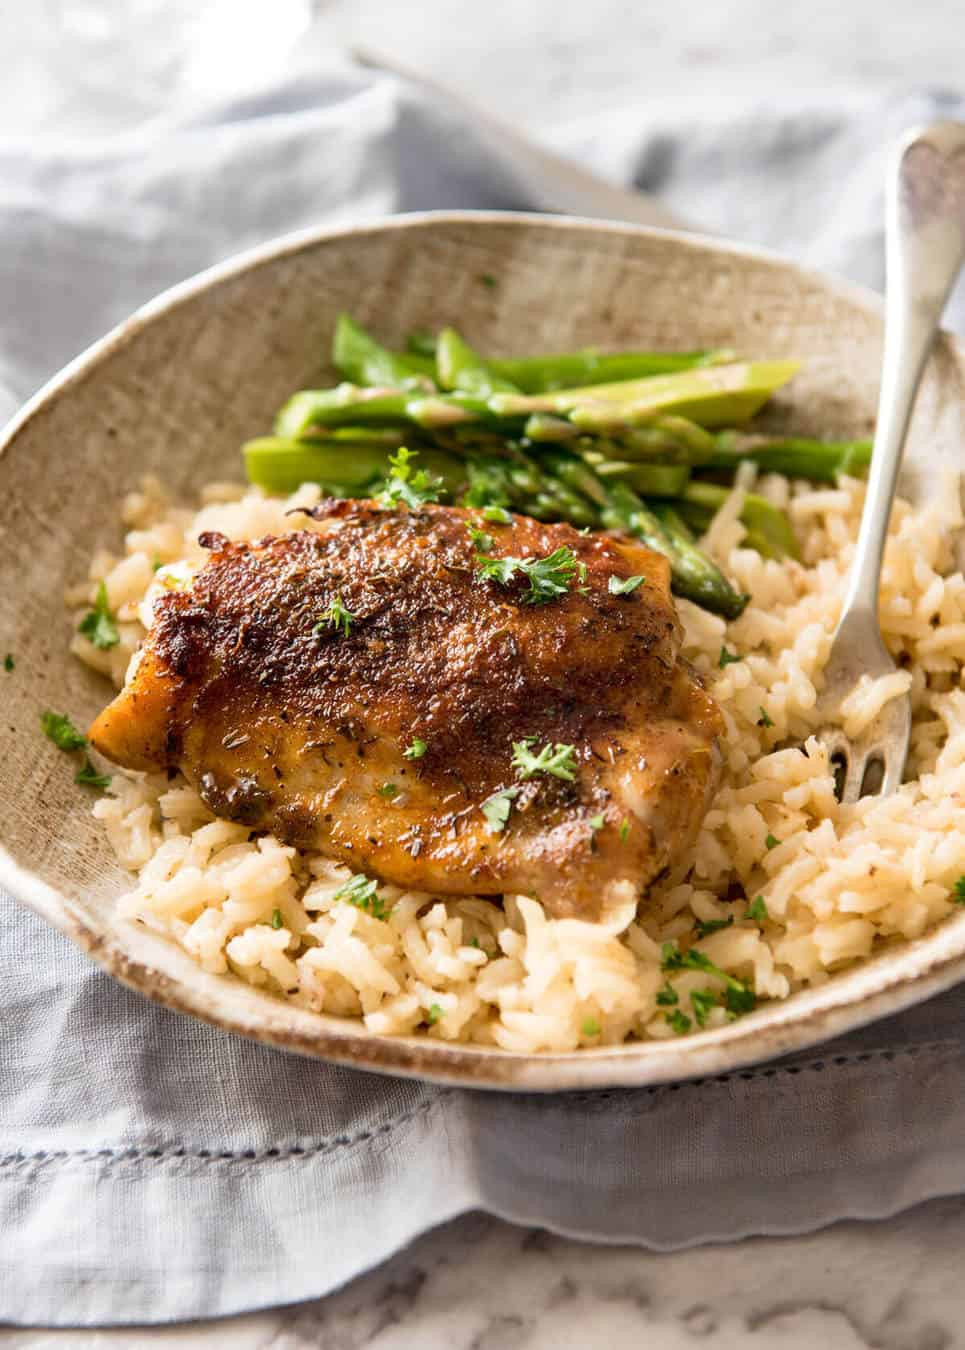 Baked Chicken And Rice Recipes  Oven Baked Chicken and Rice No Stove